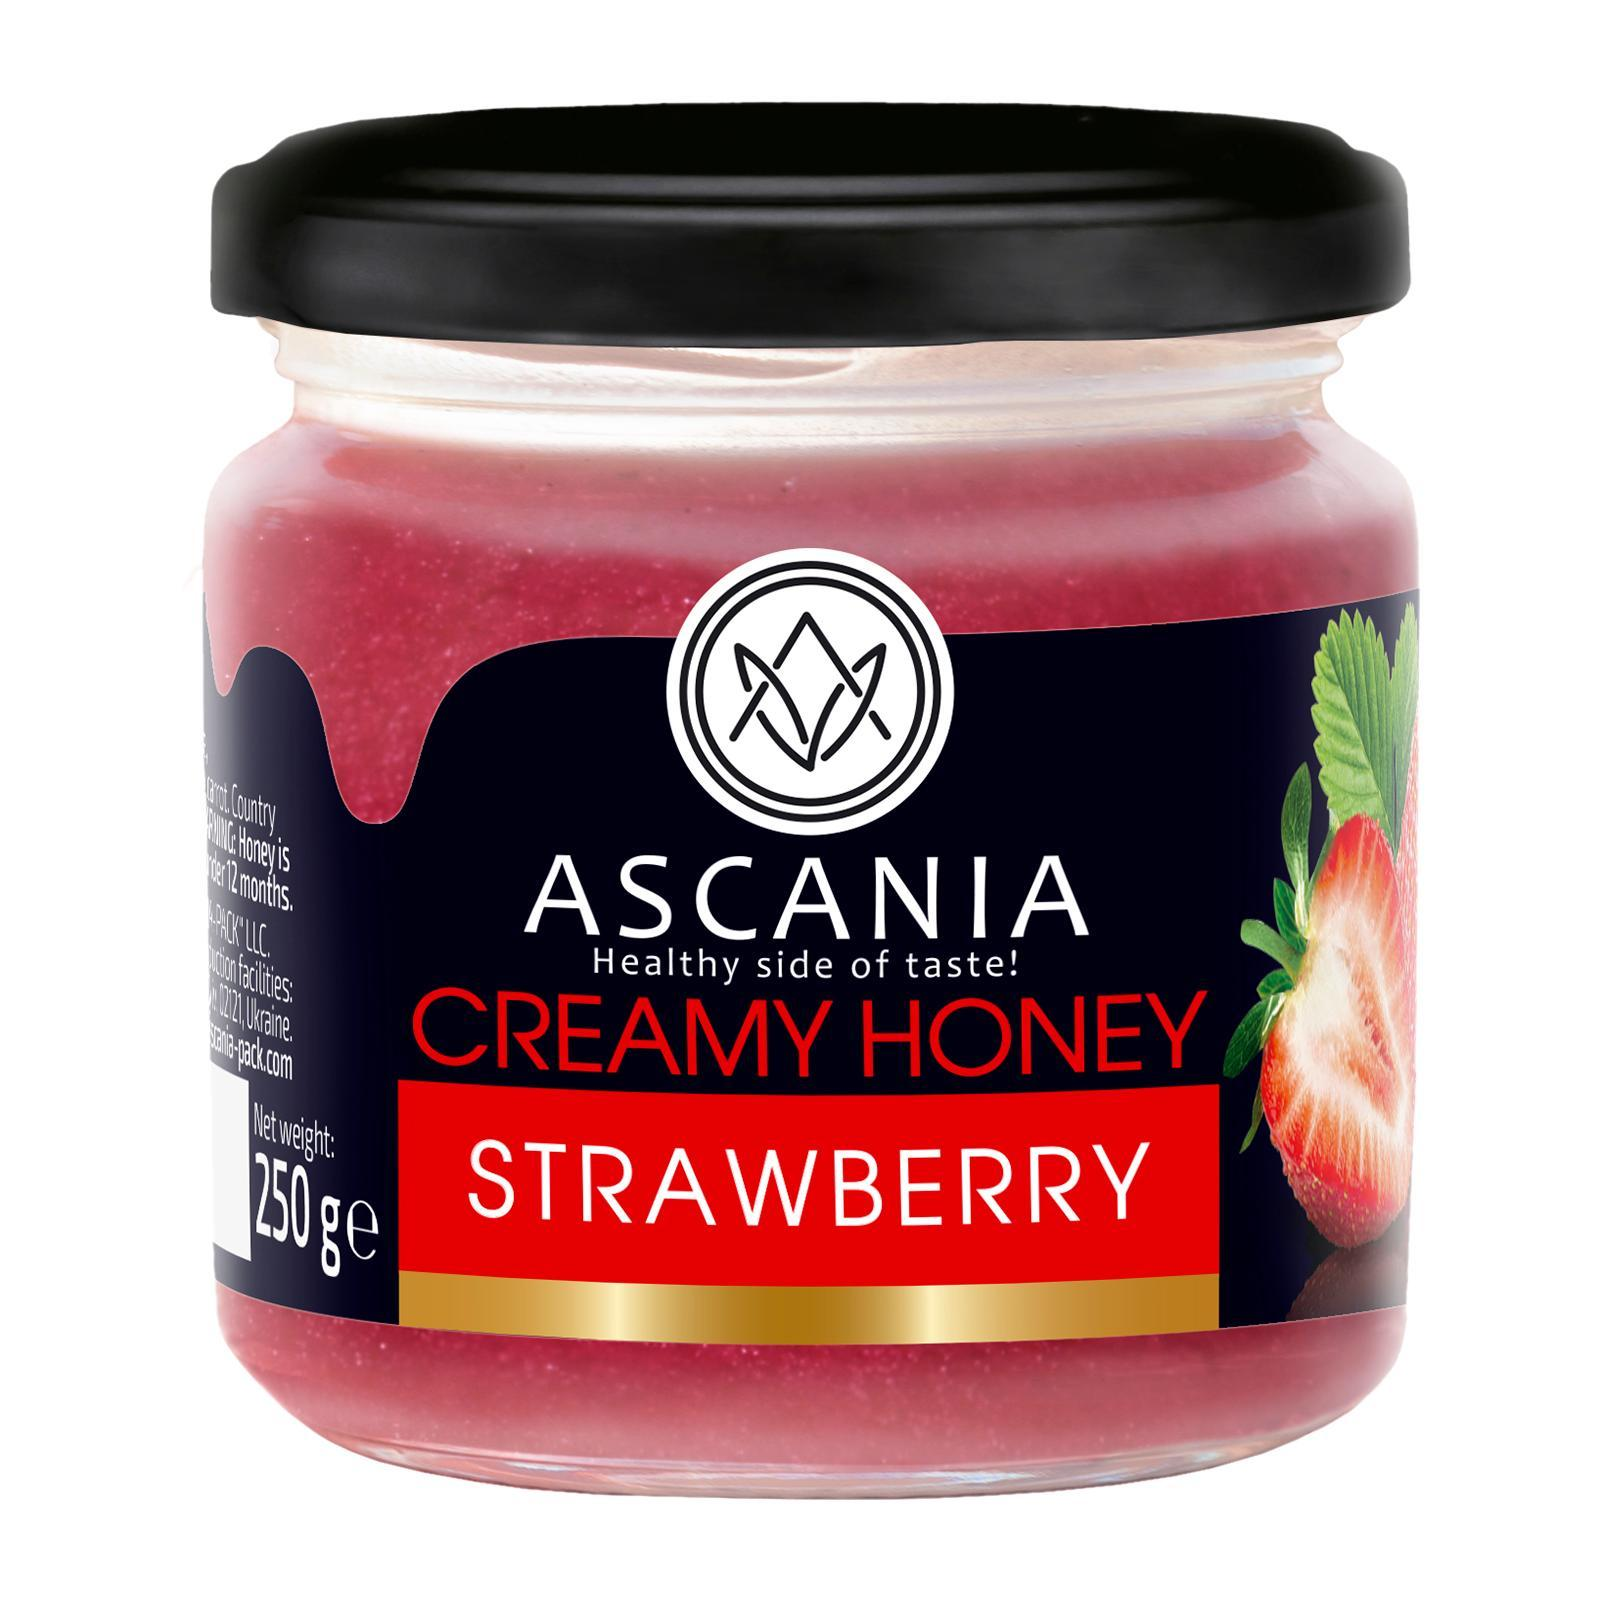 Ascania Creamy Honey With STRAWBERRY